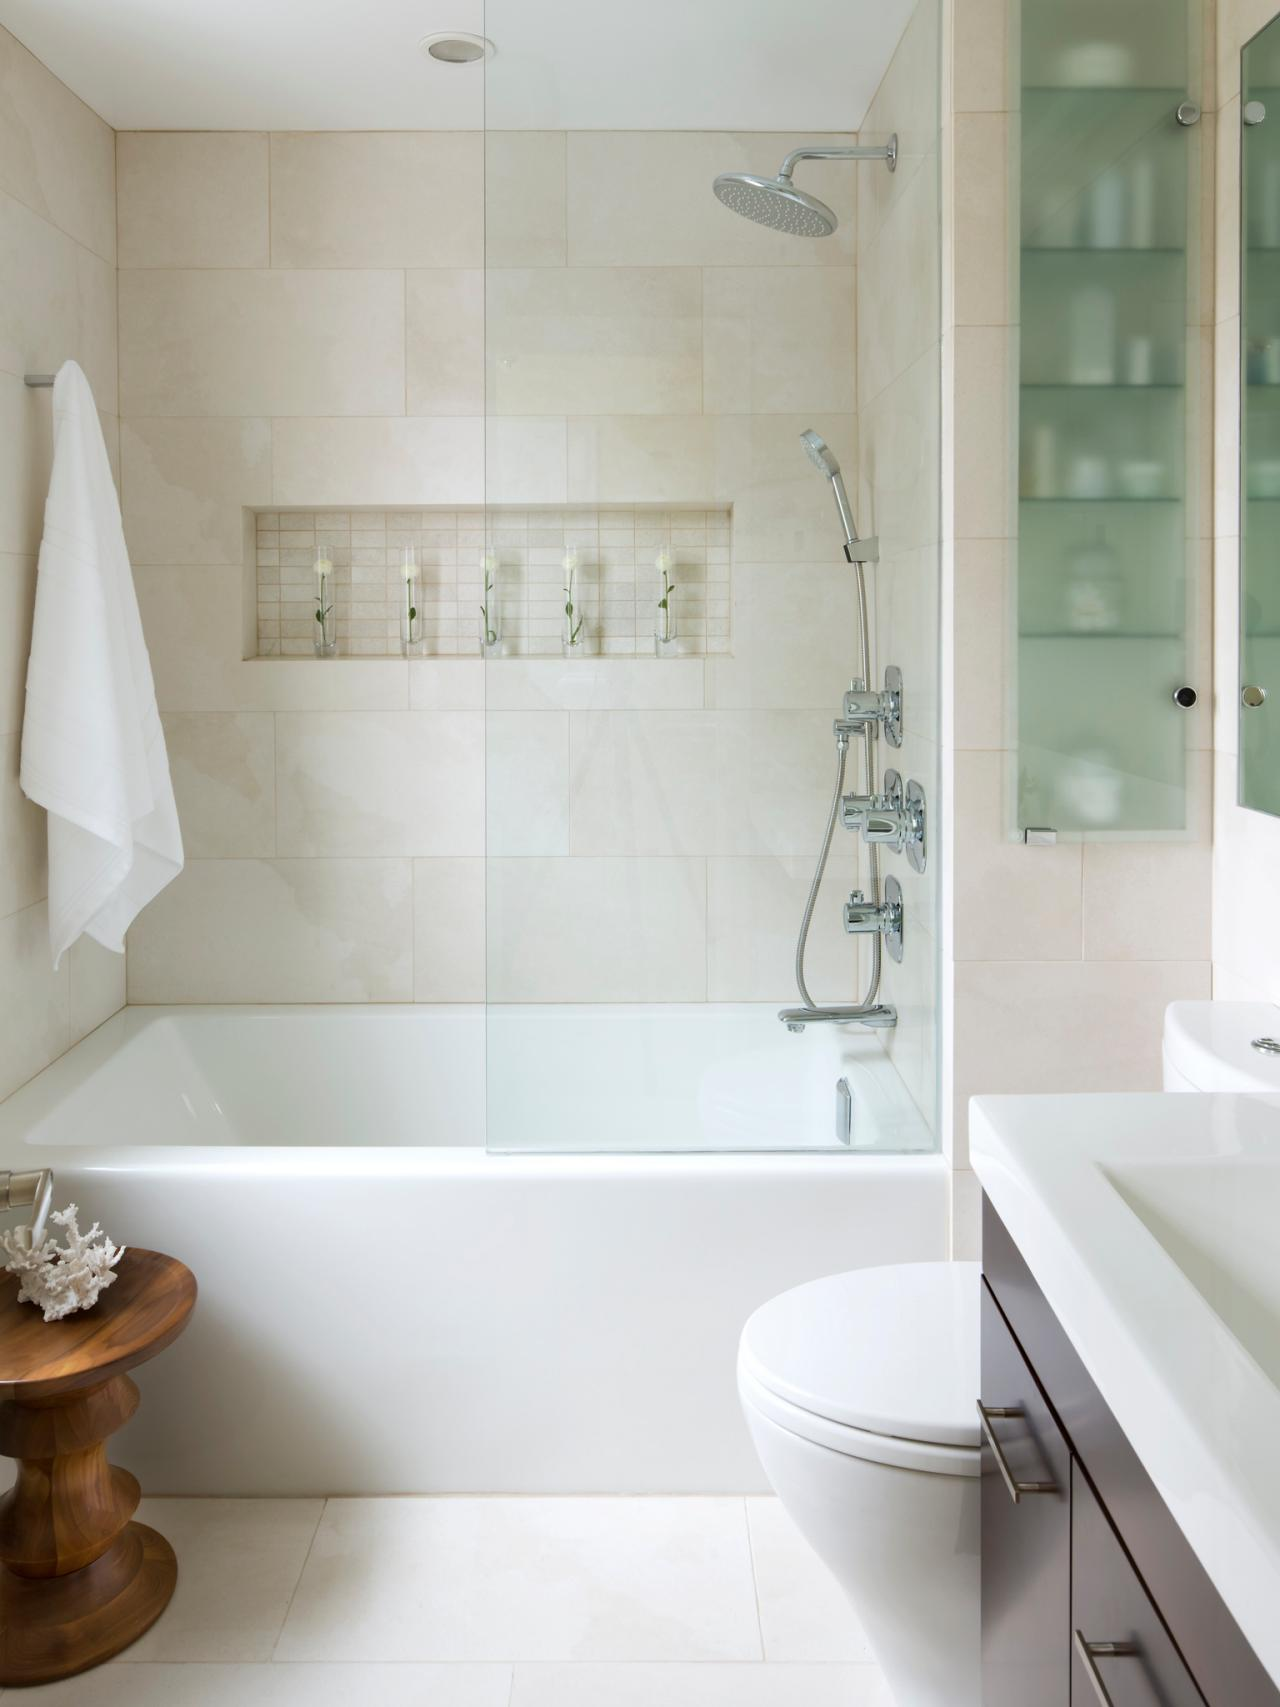 Small bathroom decorating ideas hgtv Small bathroom design with bath and shower